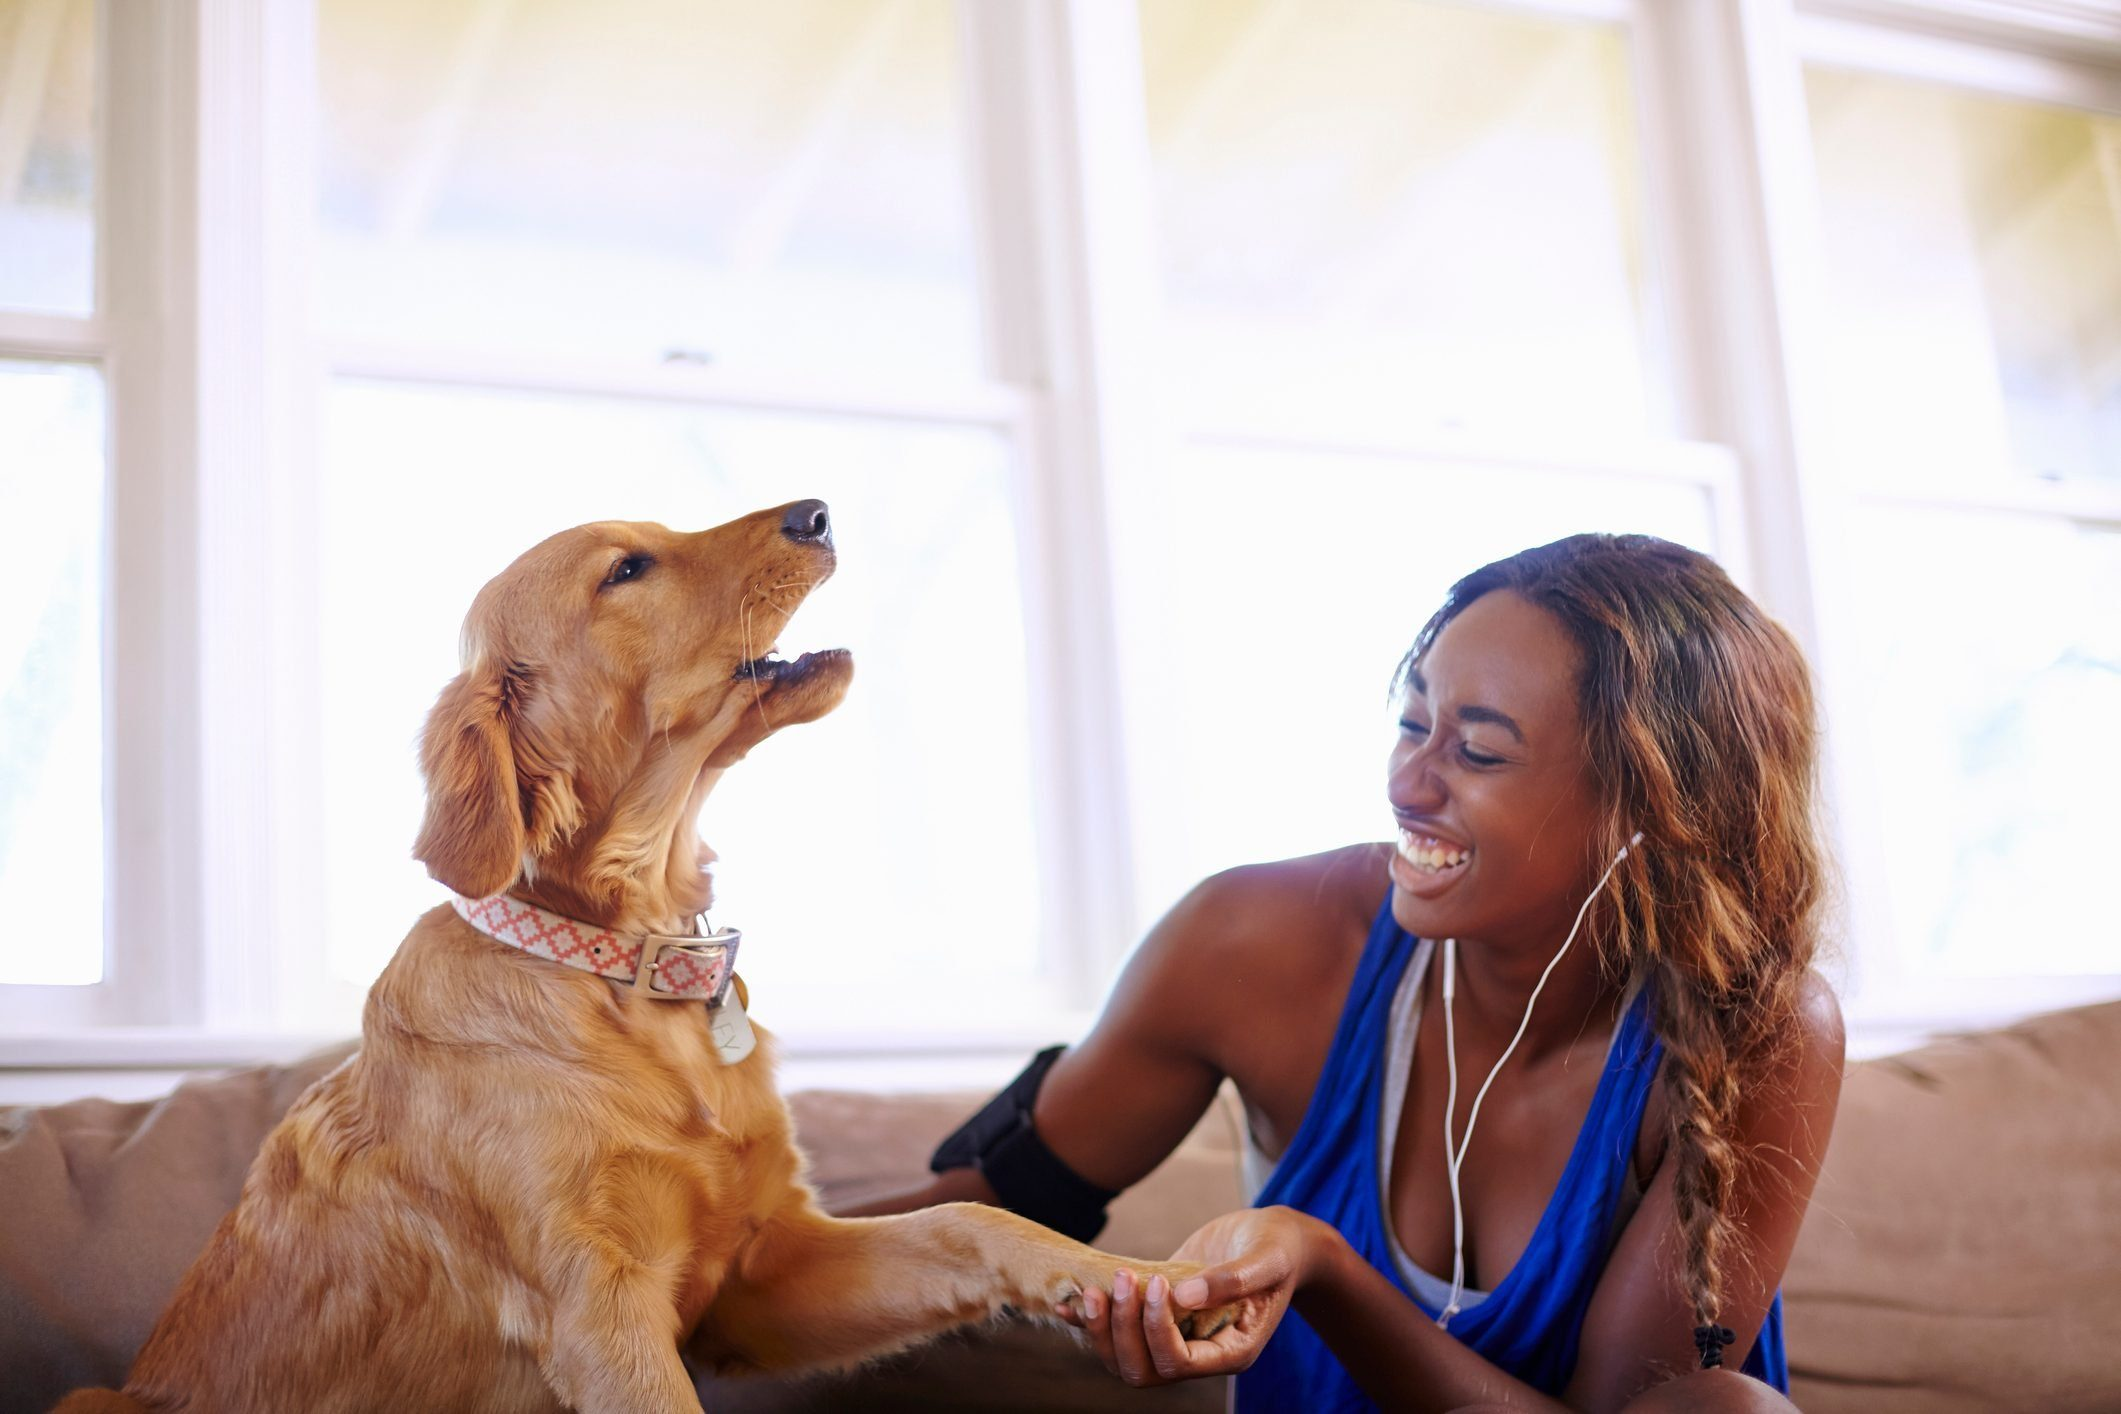 Young woman taking a training break, petting dog in sitting room